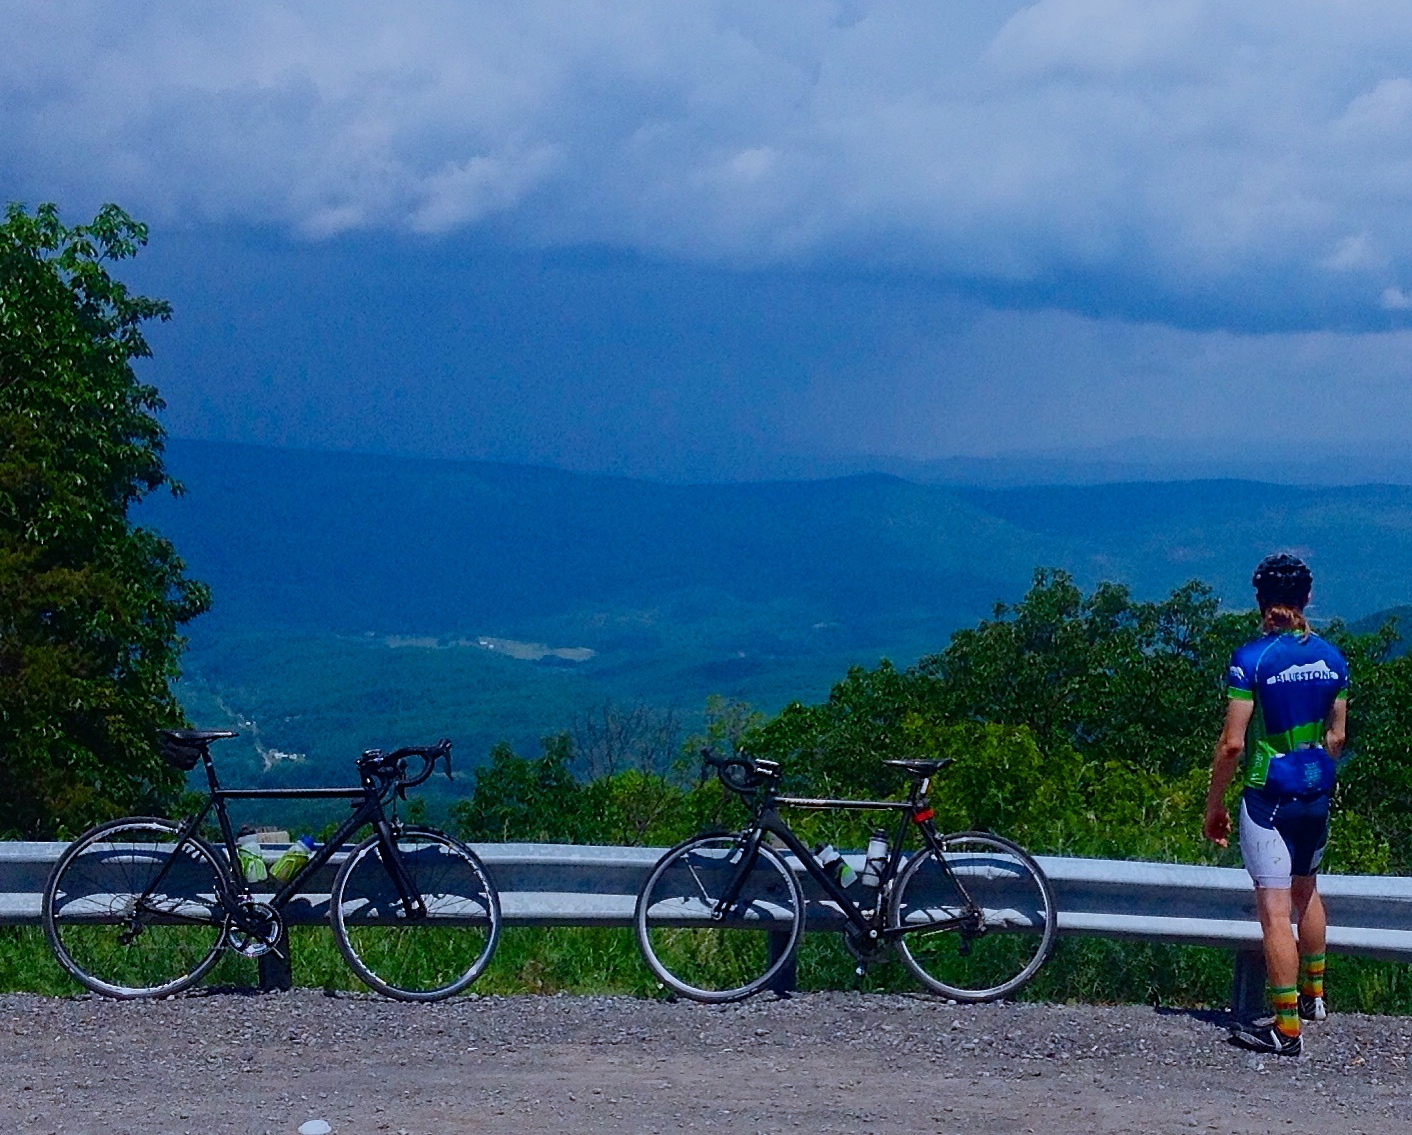 David Taylor at the top of the climb on the state line looking west at the rains headed our way.